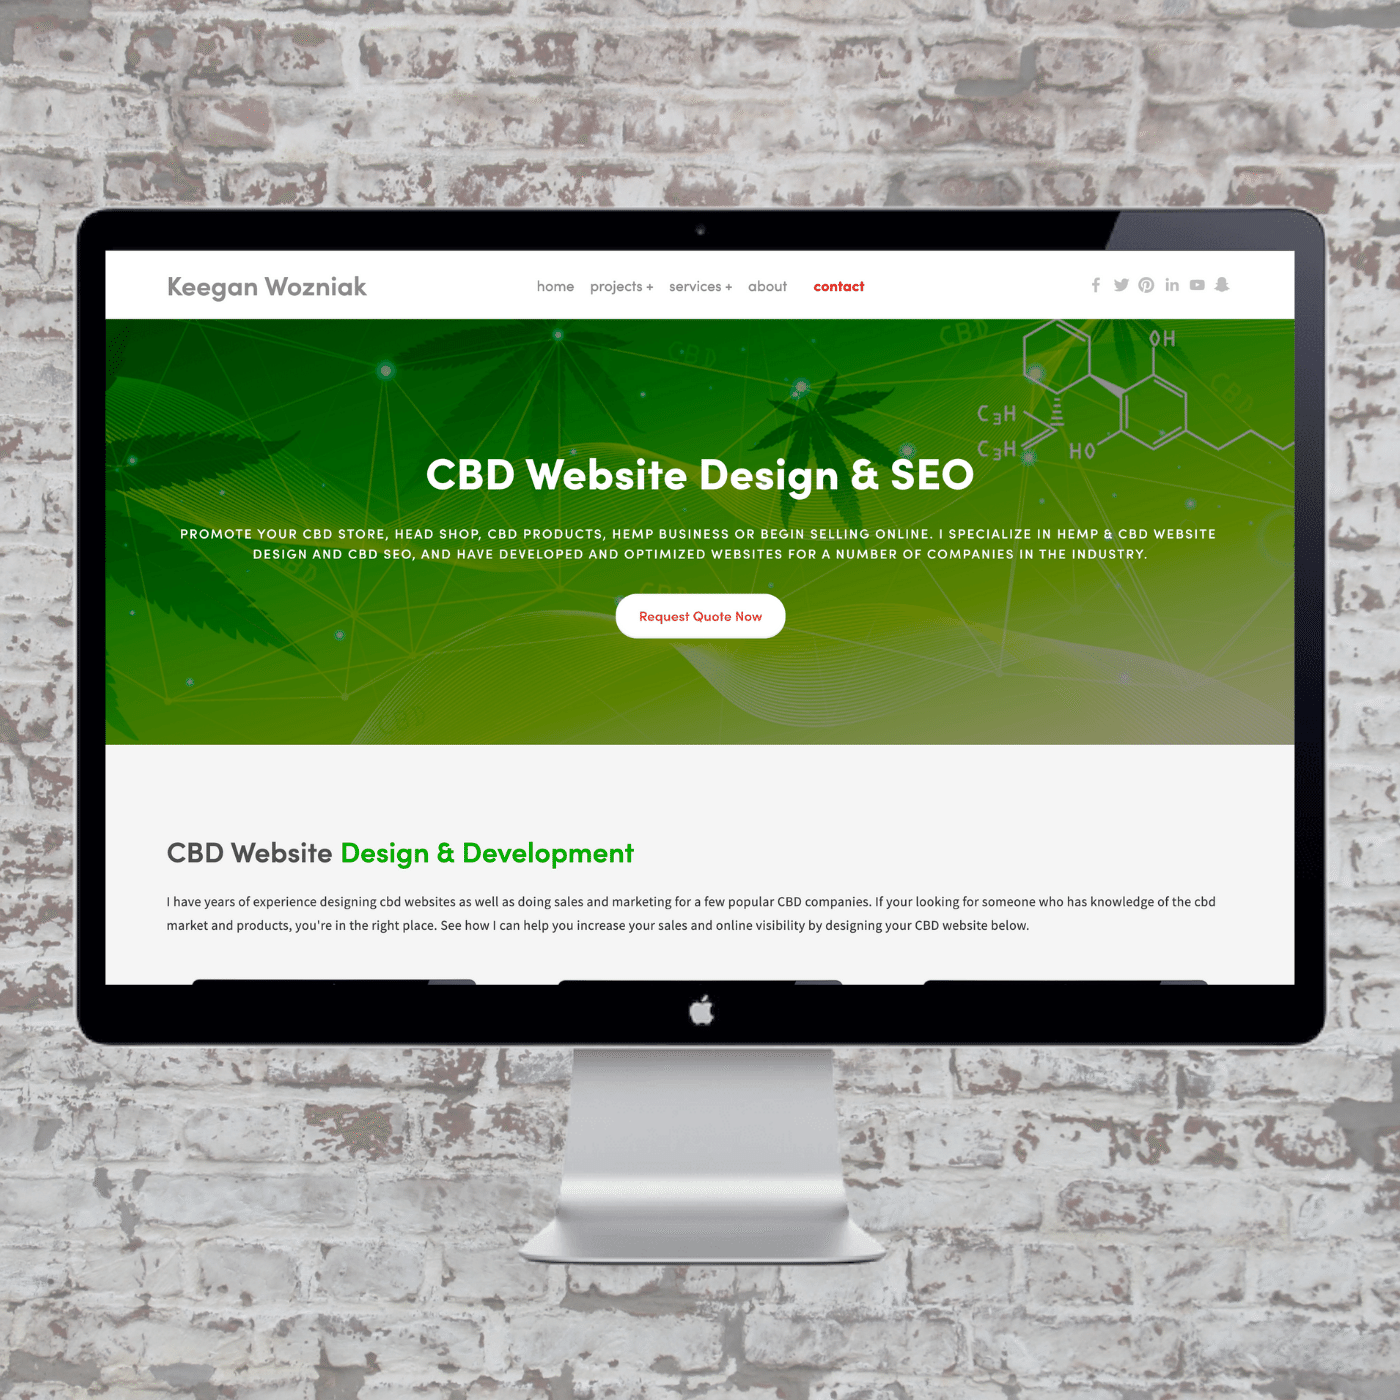 CBD Website Design & SEO | Keegan Wozniak